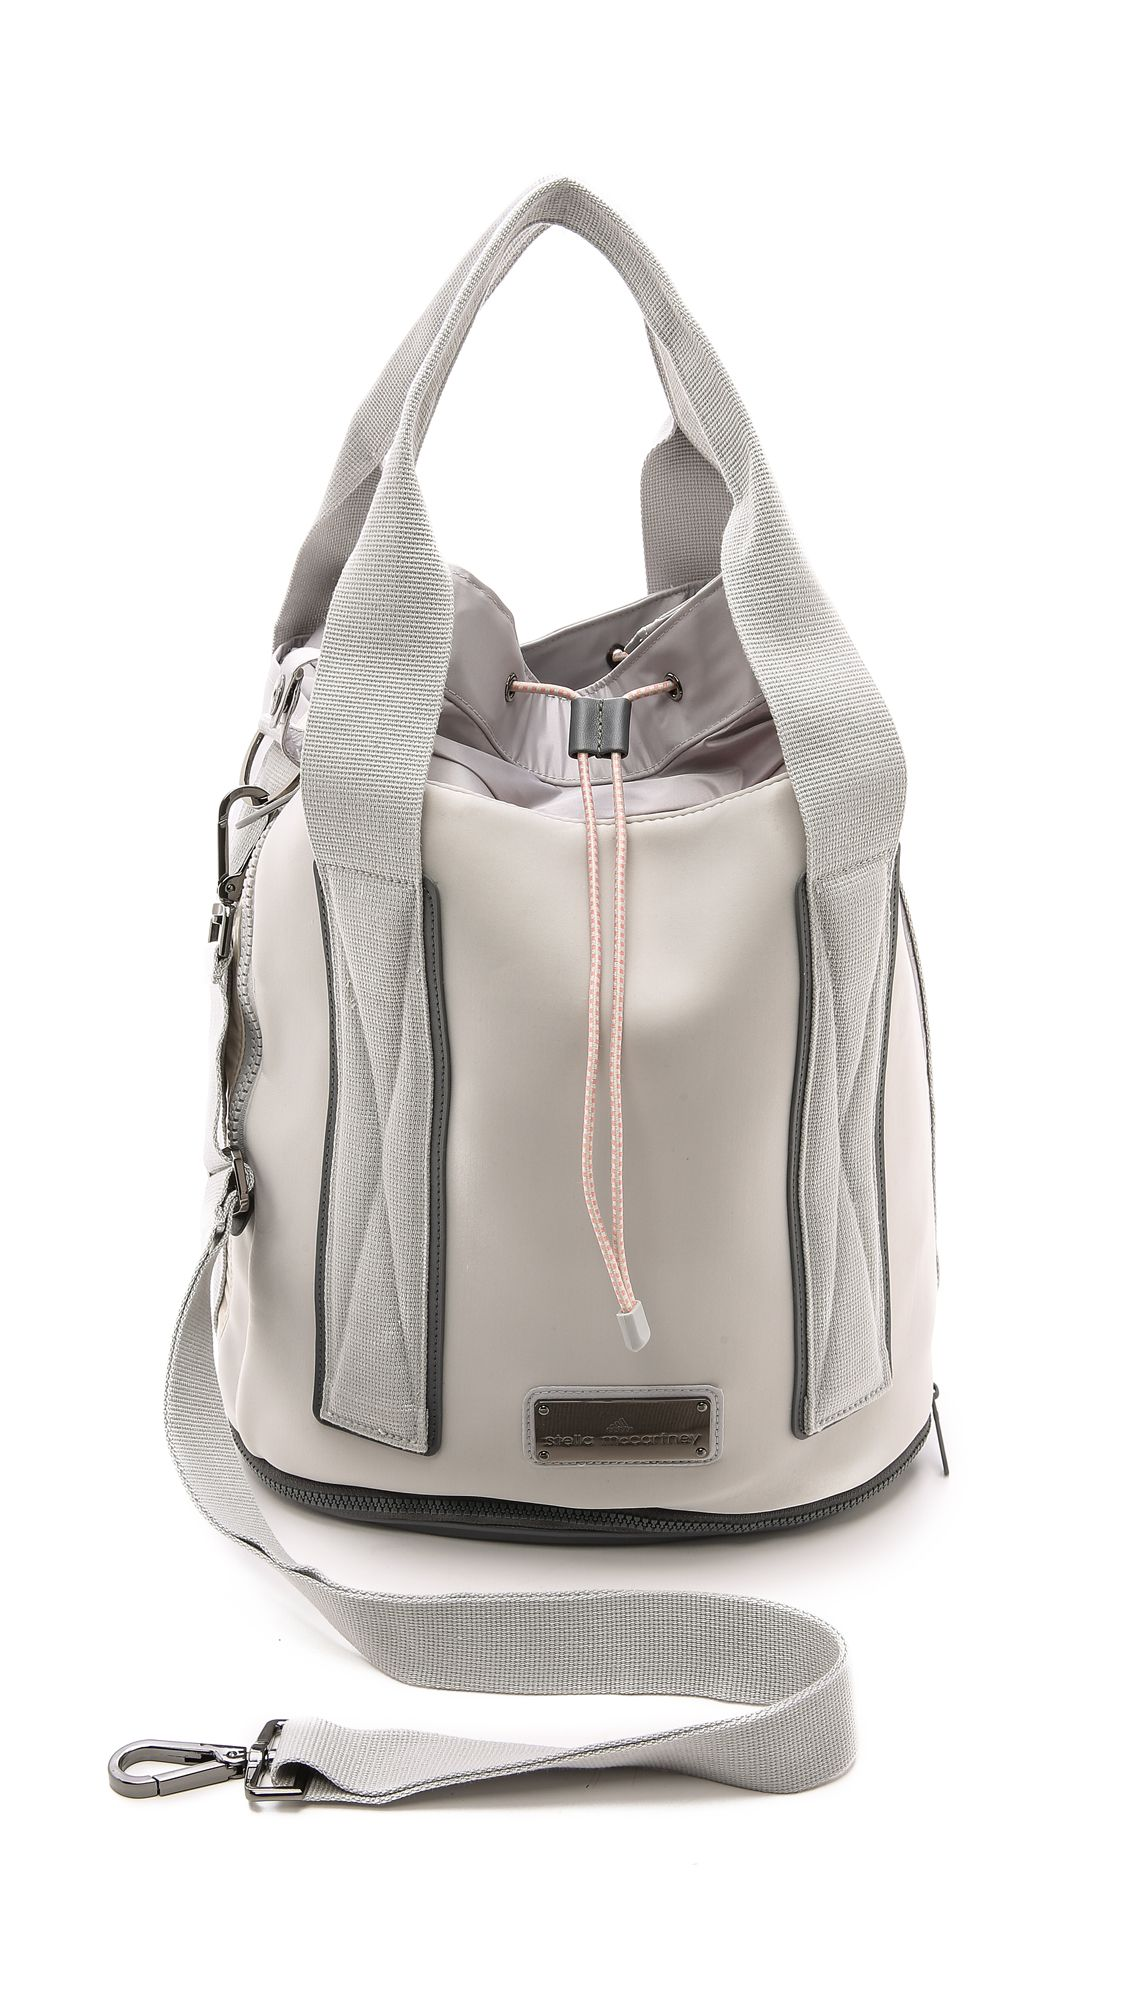 79a56e7a5eb8 adidas by Stella McCartney Tennis Bag- amazing how she can design a sport  bag and make it look like a chic and trendy statement bag.